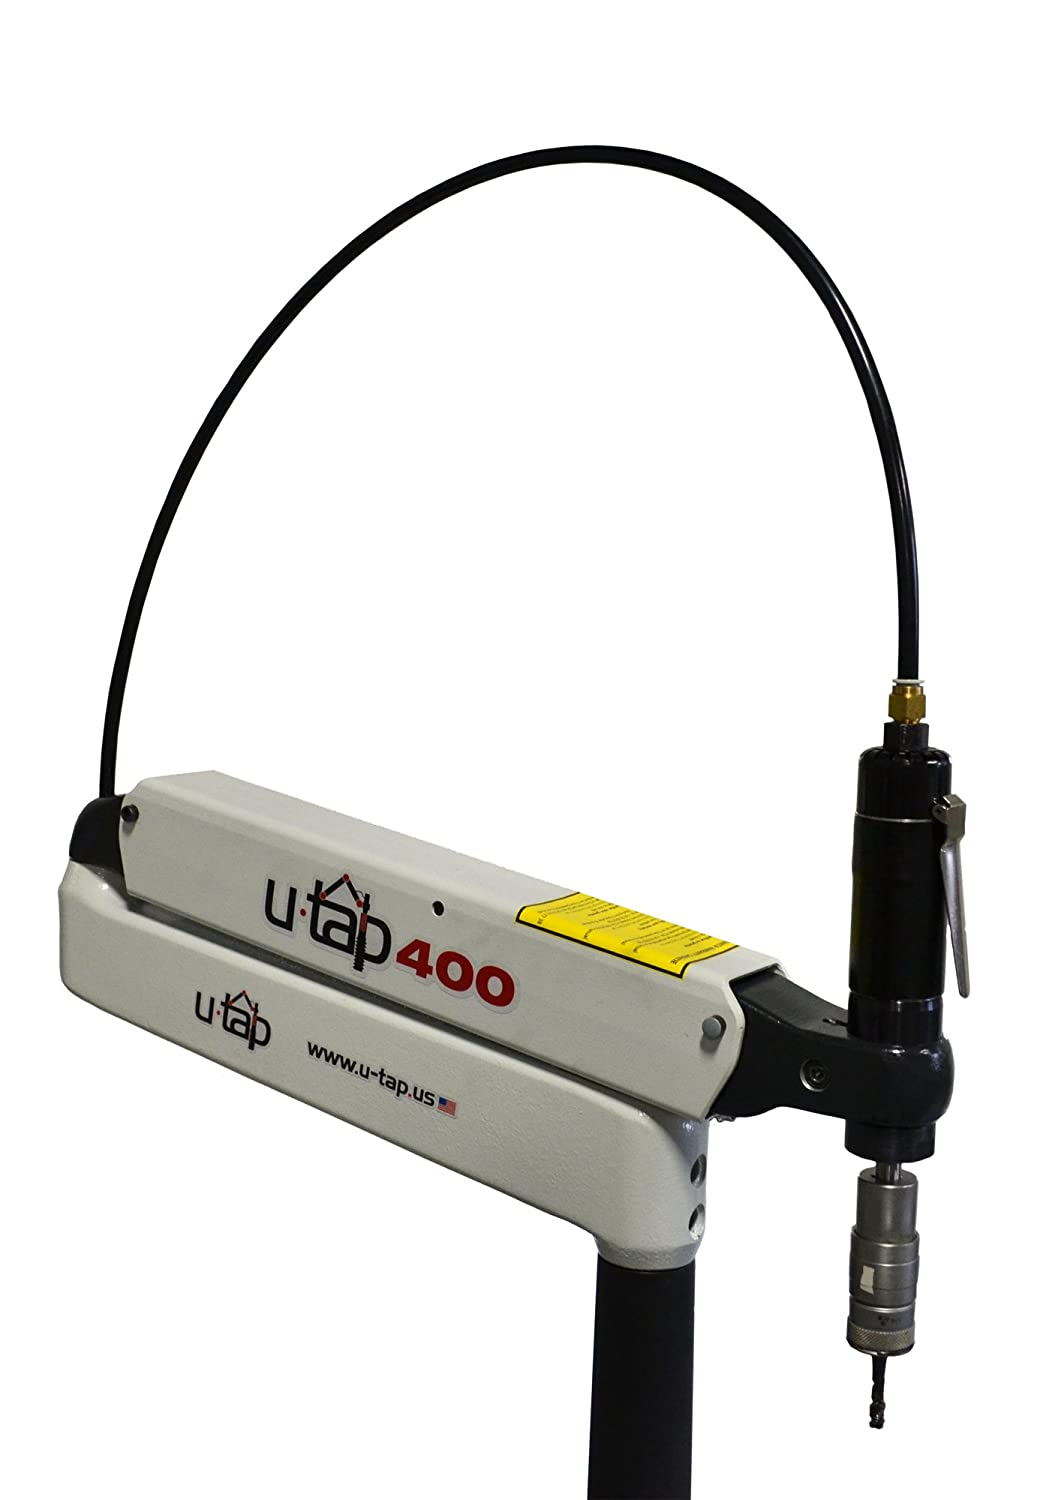 u-Tap Reservation 400 RPM ! Super beauty product restock quality top! Vertical Pneumatic Arm Cast Aluminum Tapping